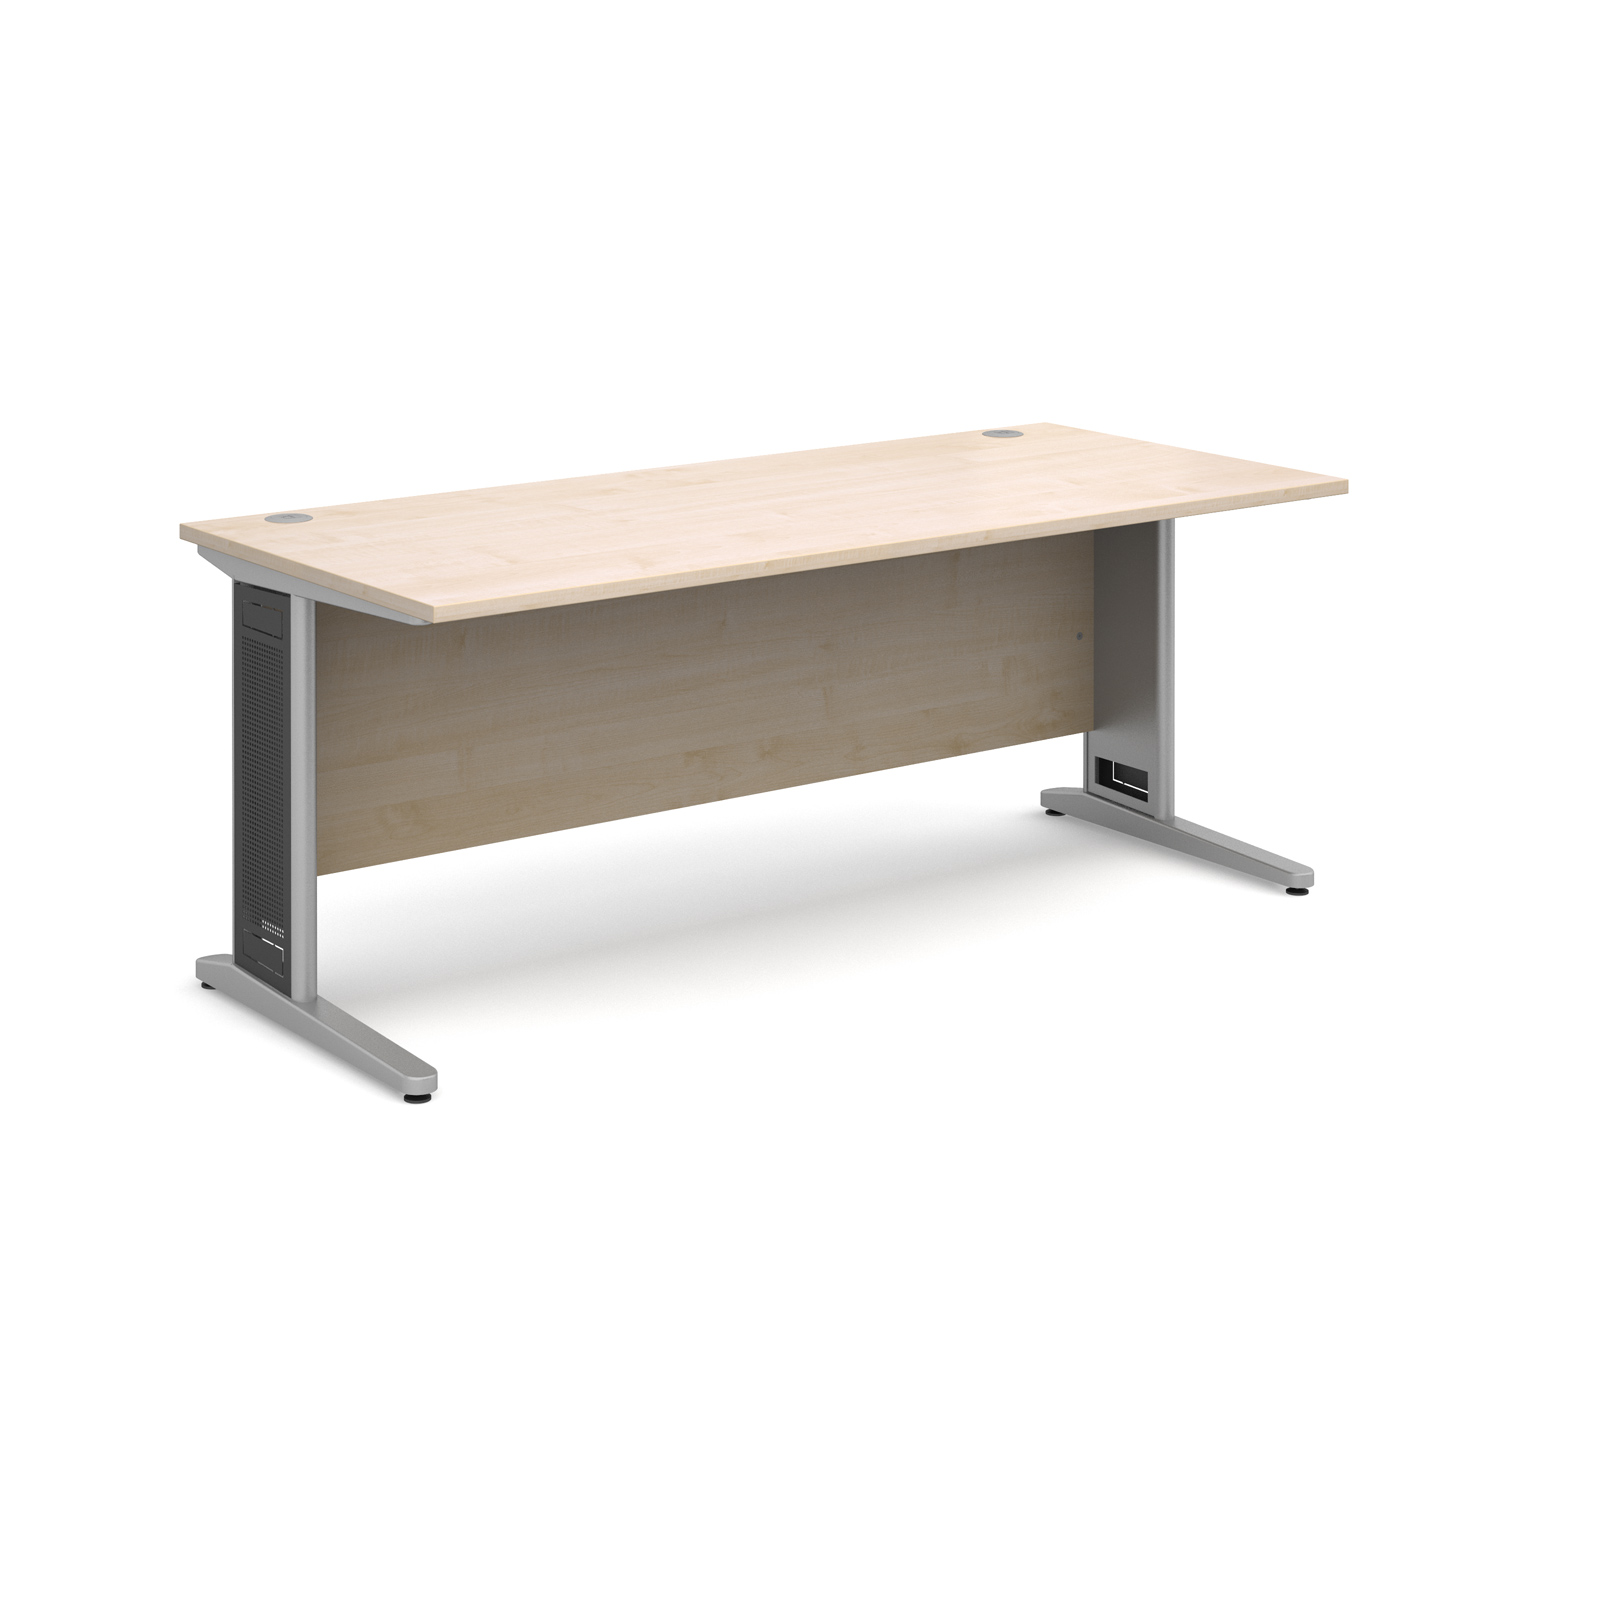 Largo straight desk 1800mm x 800mm - silver cantilever frame with removable grill, maple top